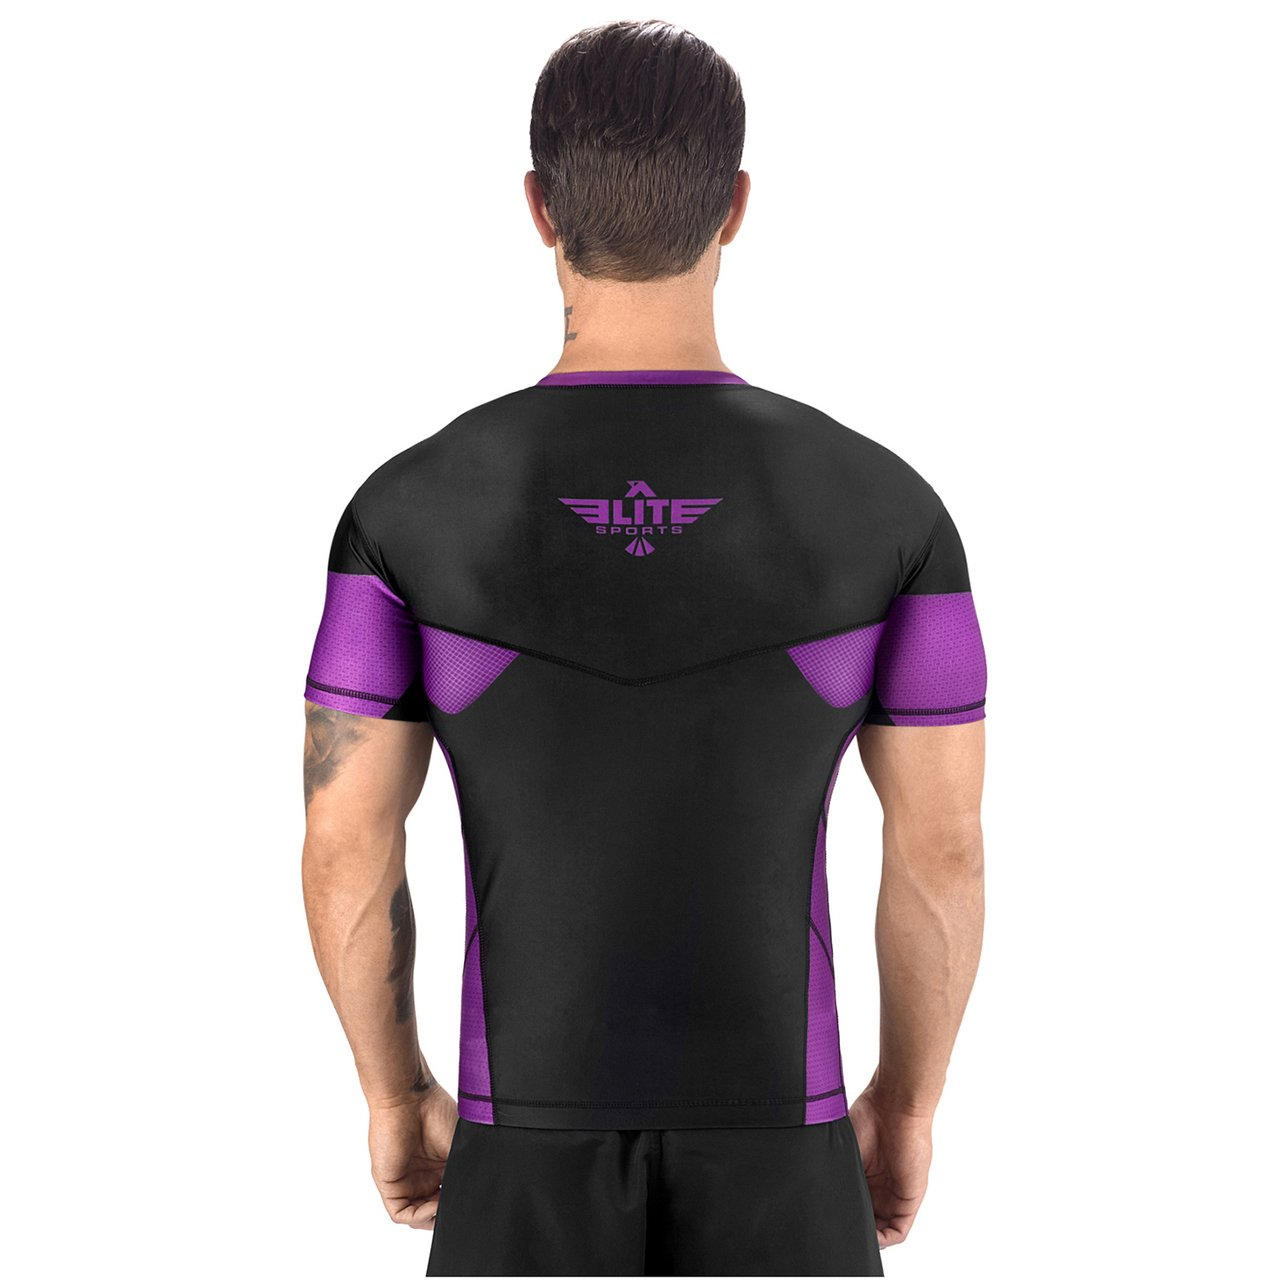 Load image into Gallery viewer, Elite Sports Honey Comb Sublimation Black/Purple Short Sleeve Judo Rash Guard